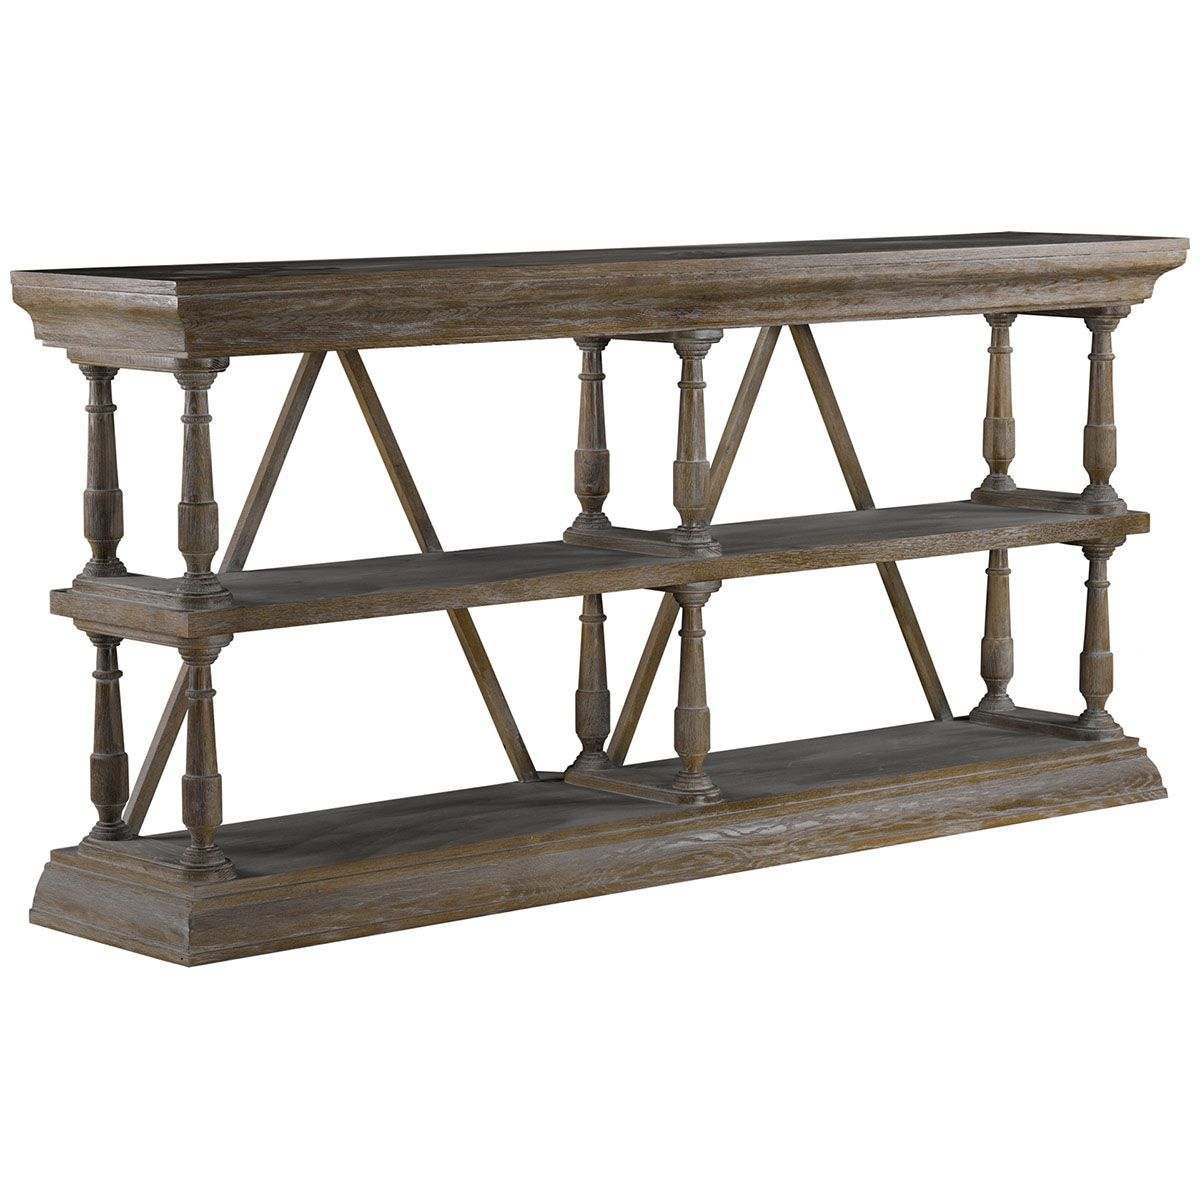 Curations limited natural cross console 88101115 curation curations limited solid weathered oak console table with architectural cross stretchers for support and design geotapseo Choice Image